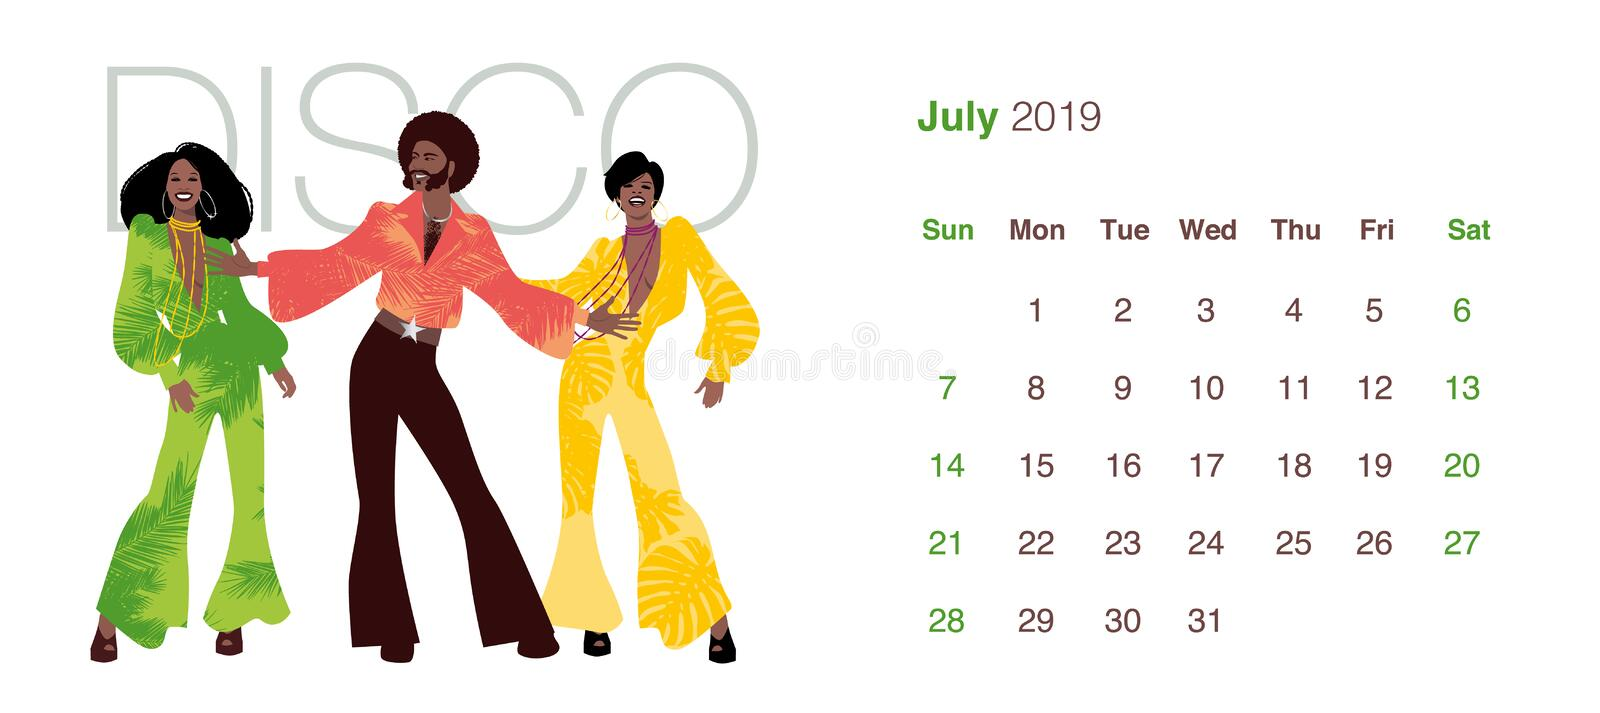 2019 Dance Calendar. July. Man and two women wearing clothes in the style of the 70s dancing Disco music vector illustration